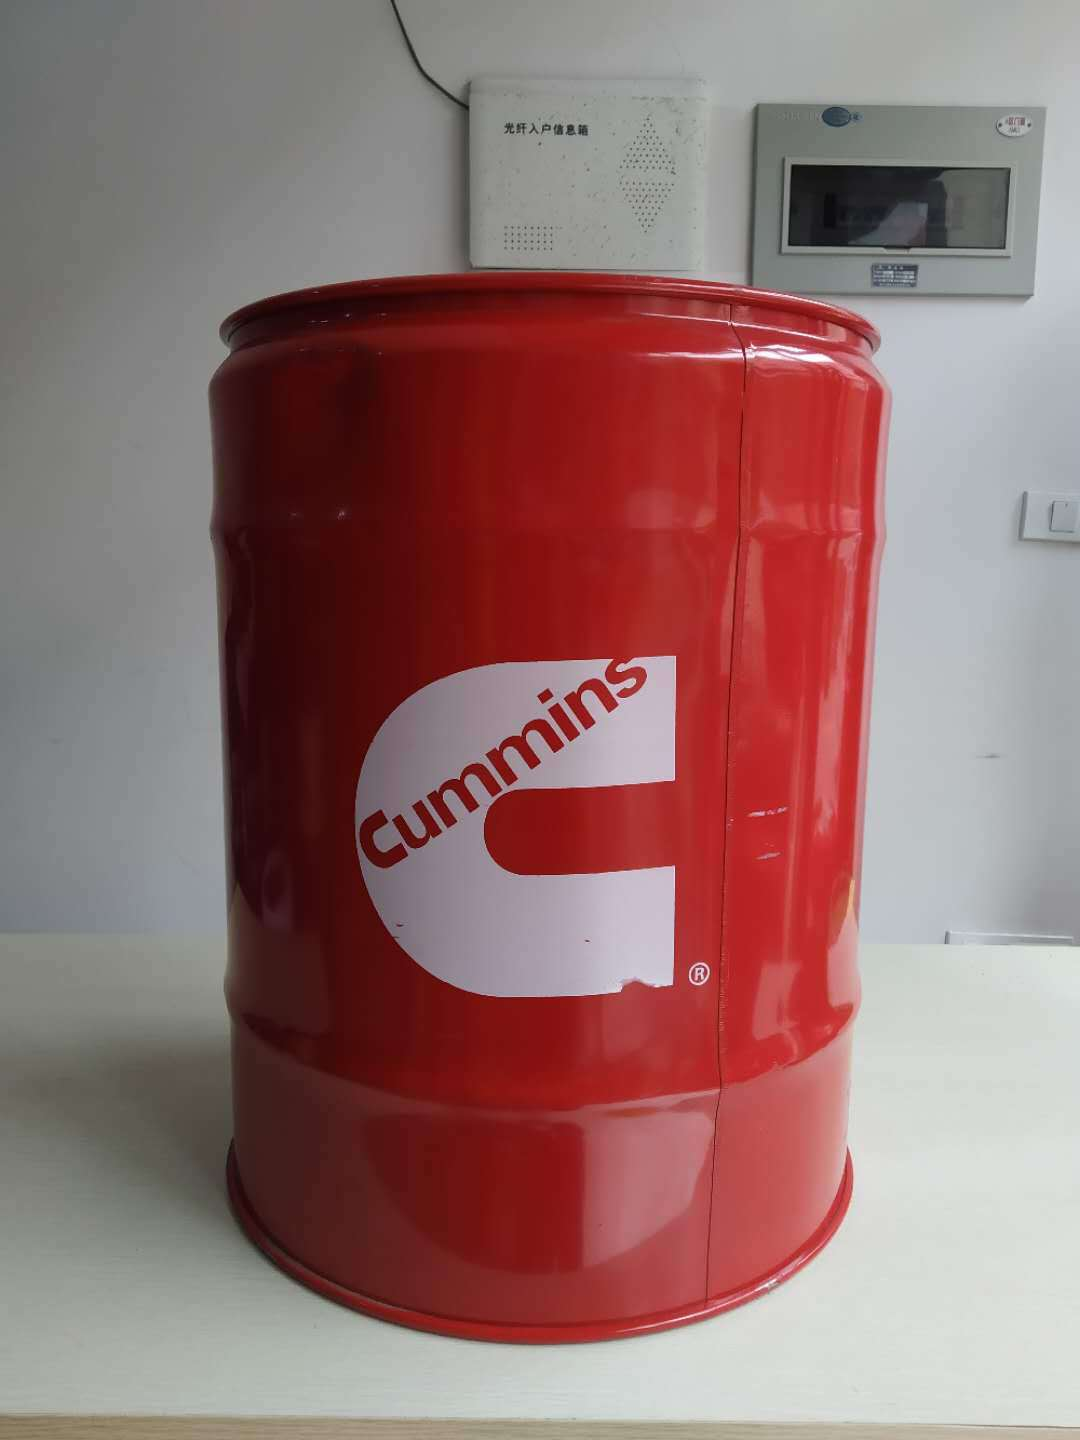 Chongqing Cummins special engine oil CH-4 15W/40 18L new generation original lubricating oil number 4297478